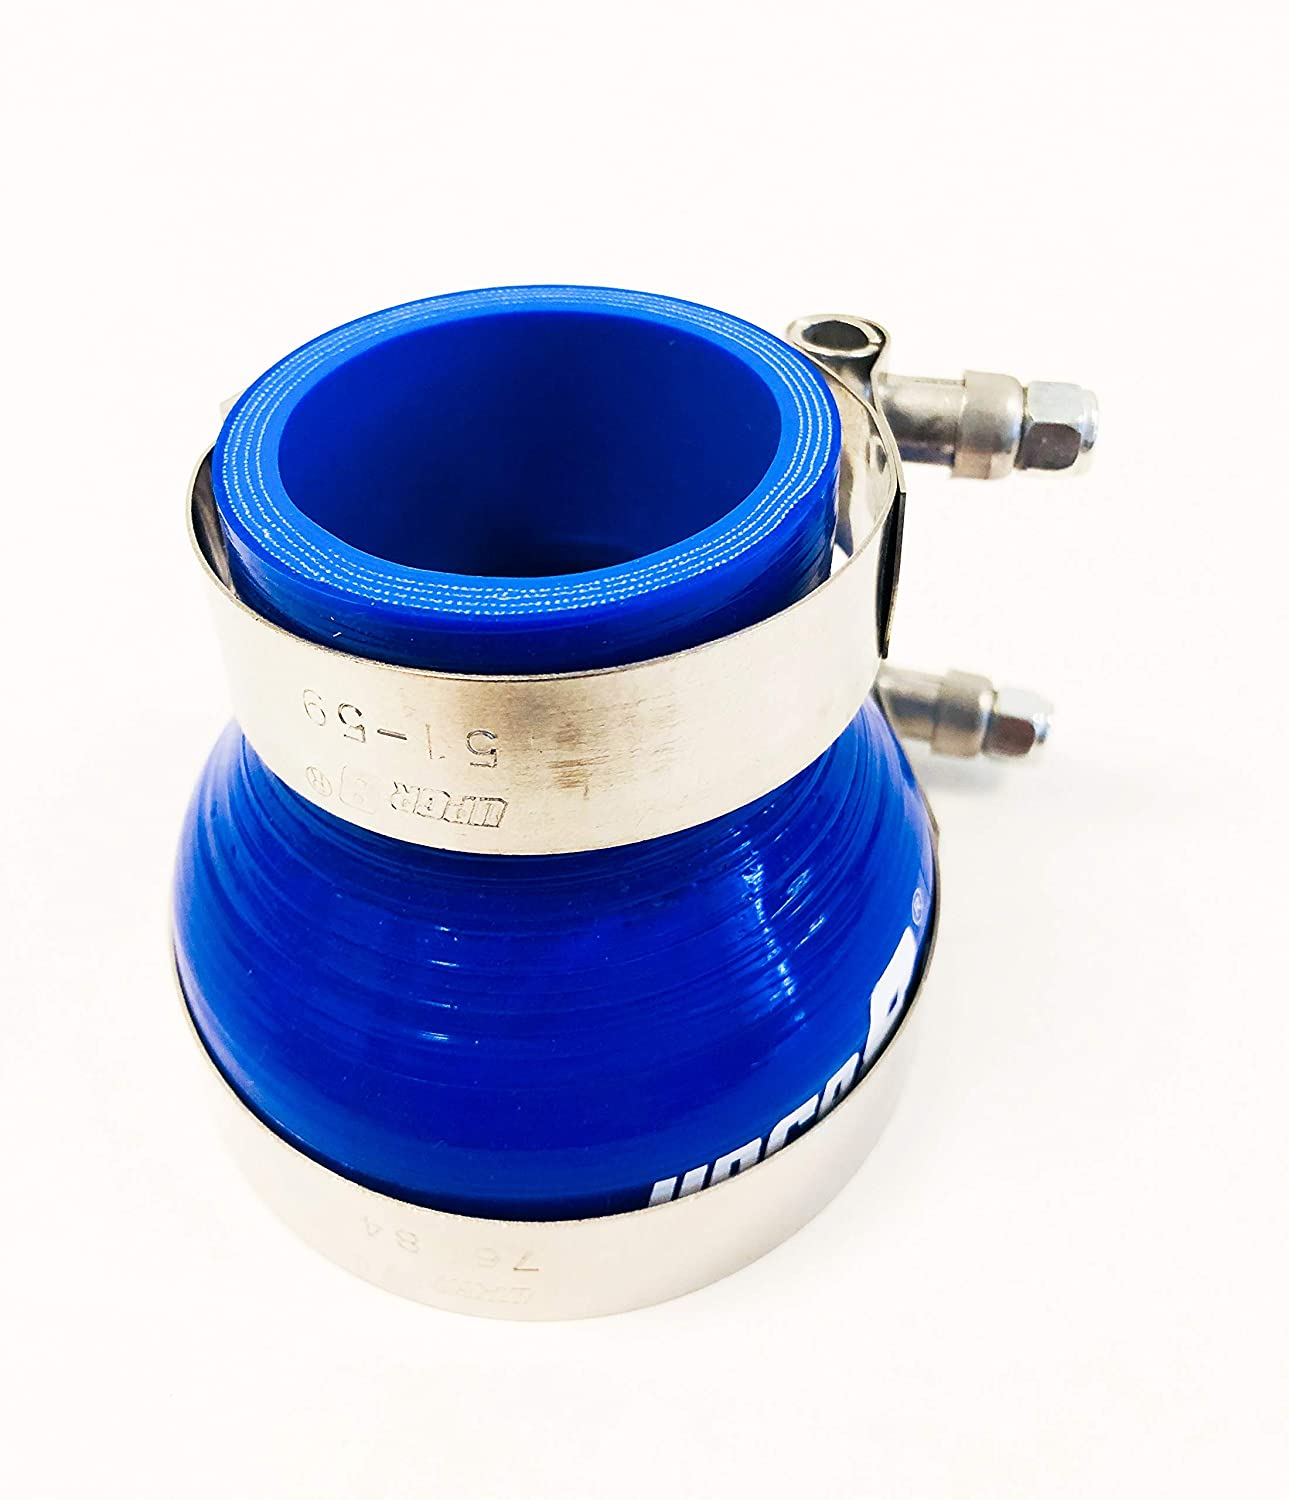 1.5-2 Blue Upgr8 Universal 4-Ply High Performance 1.5 to 2 Straight Reducer Coupler Silicone Hose 38mm to 51mm T Bolt Clamp